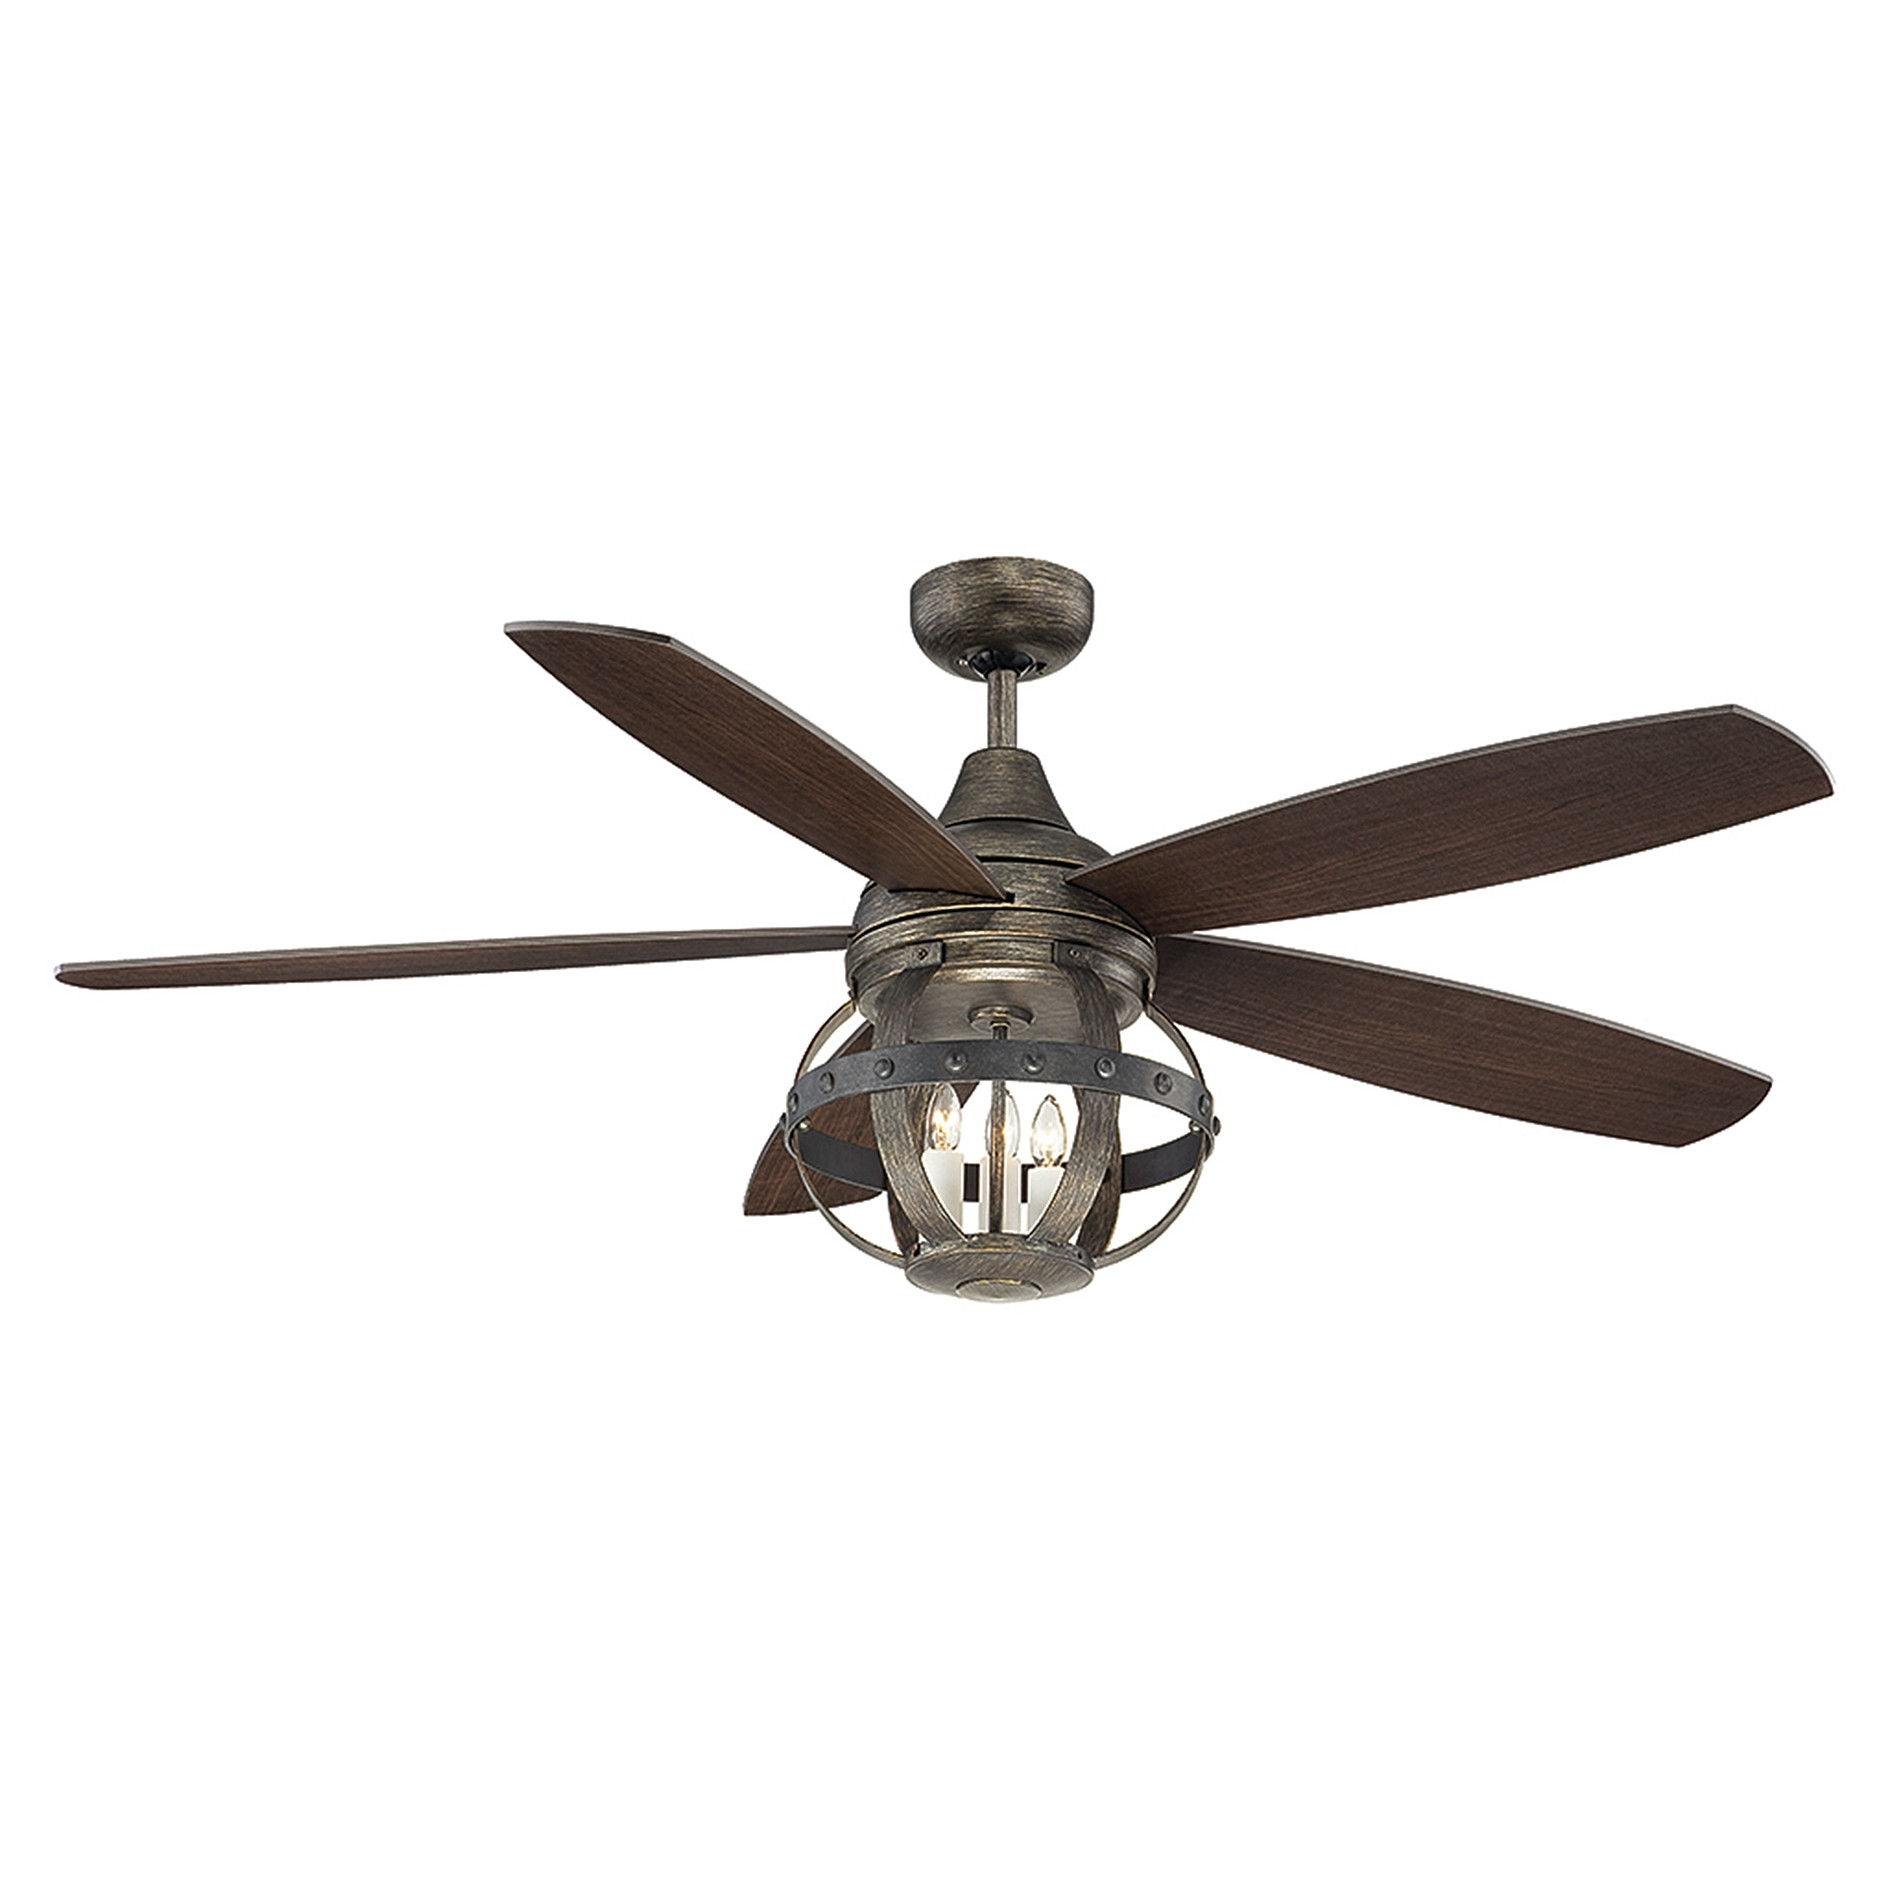 Ceiling Fans : Astounding Lowes Outdoor Ceiling Fans With Lights With Regard To Low Profile Outdoor Ceiling Lights (#1 of 15)